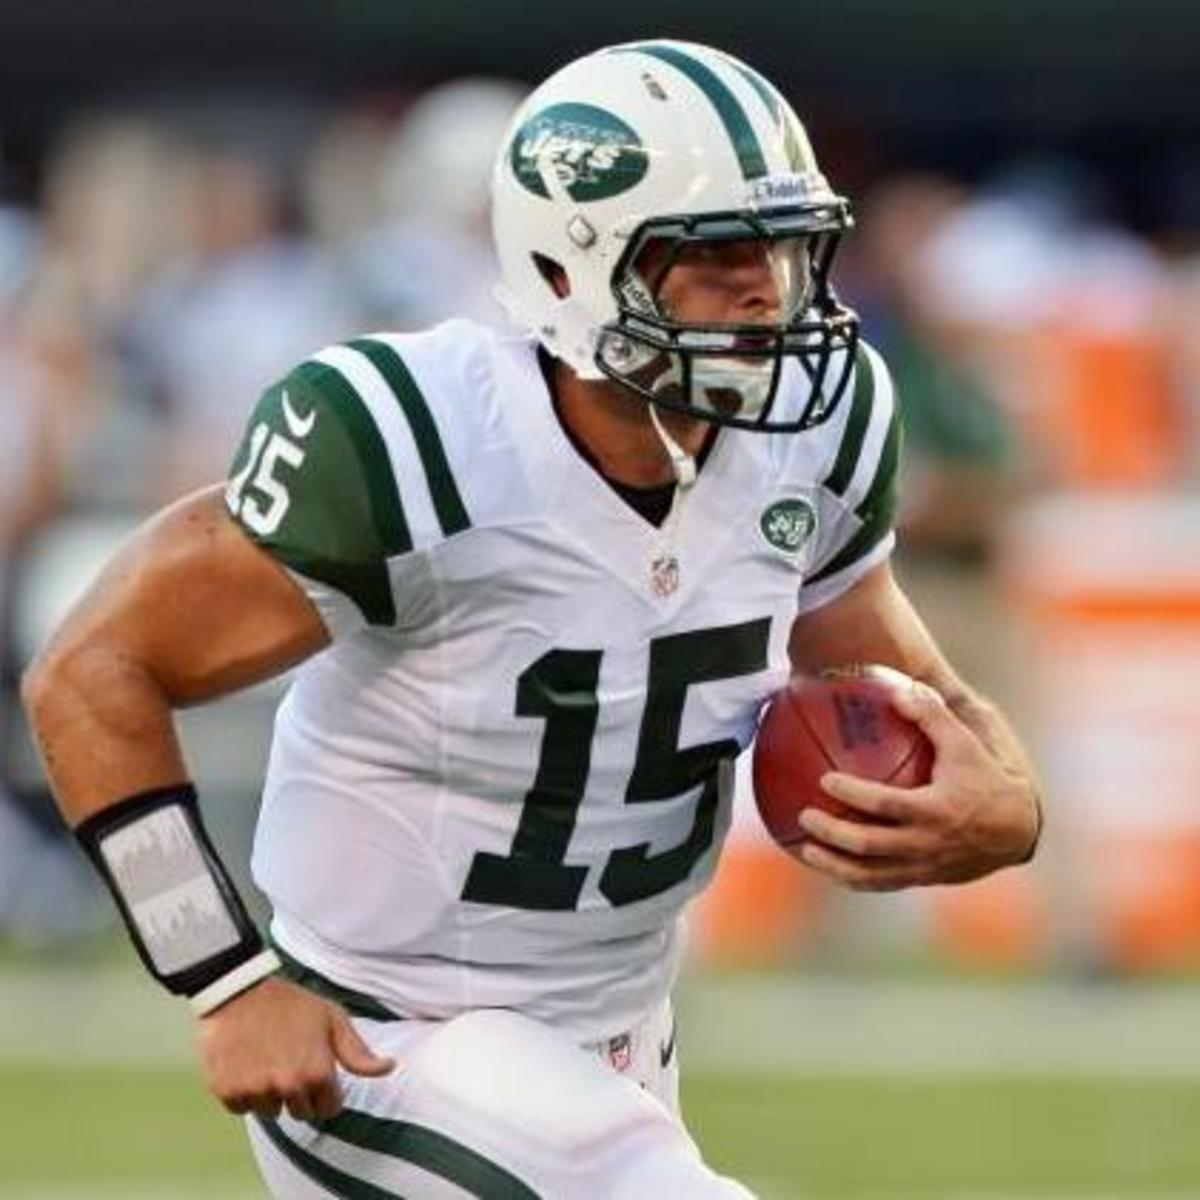 Tim Tebow with the Jets.